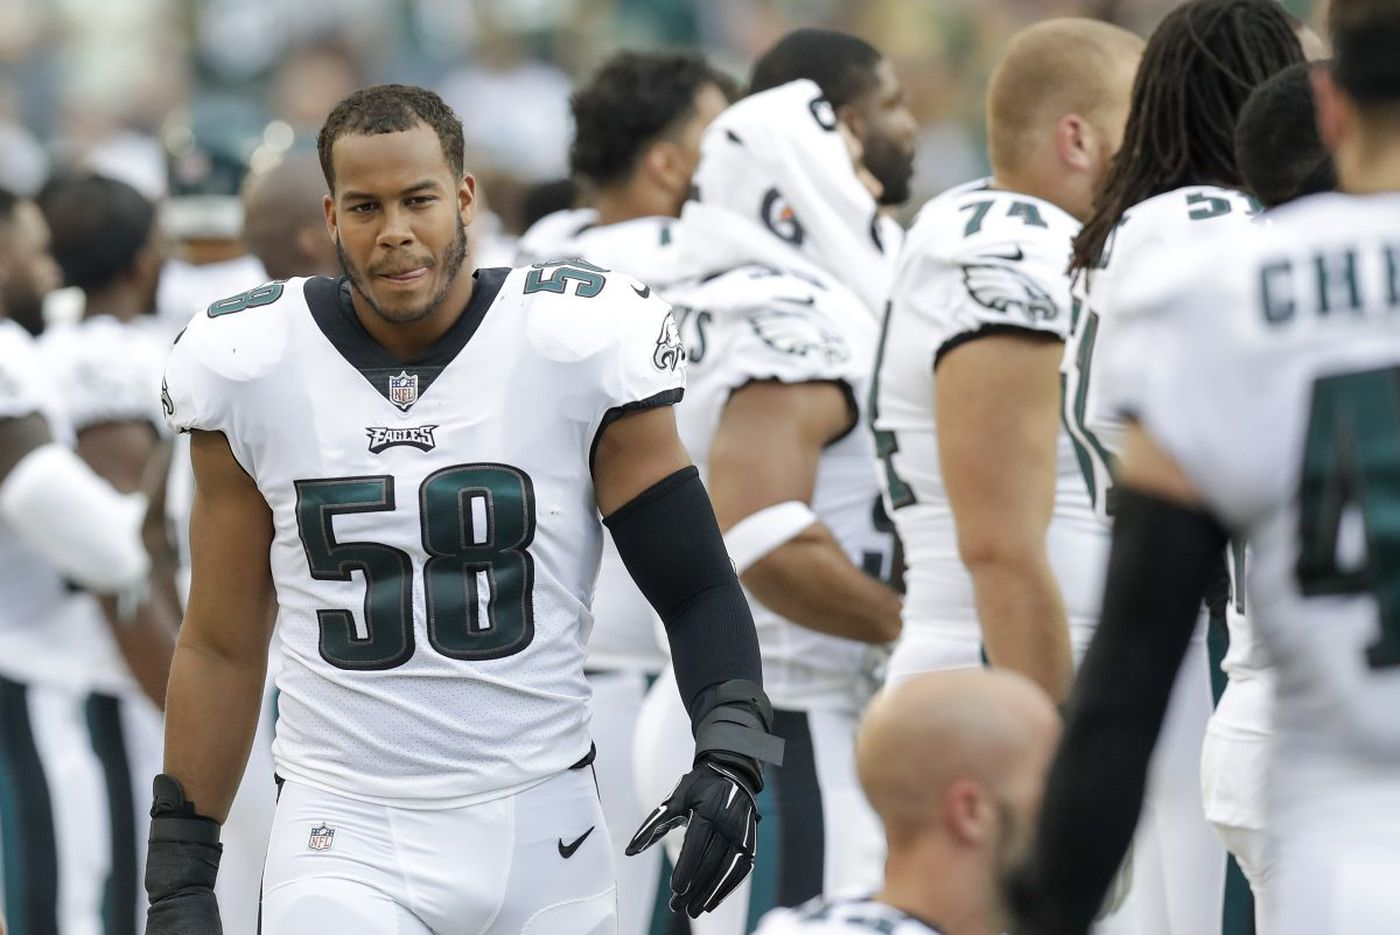 Eagles linebacker Jordan Hicks on Week 1: 'I'll be there'